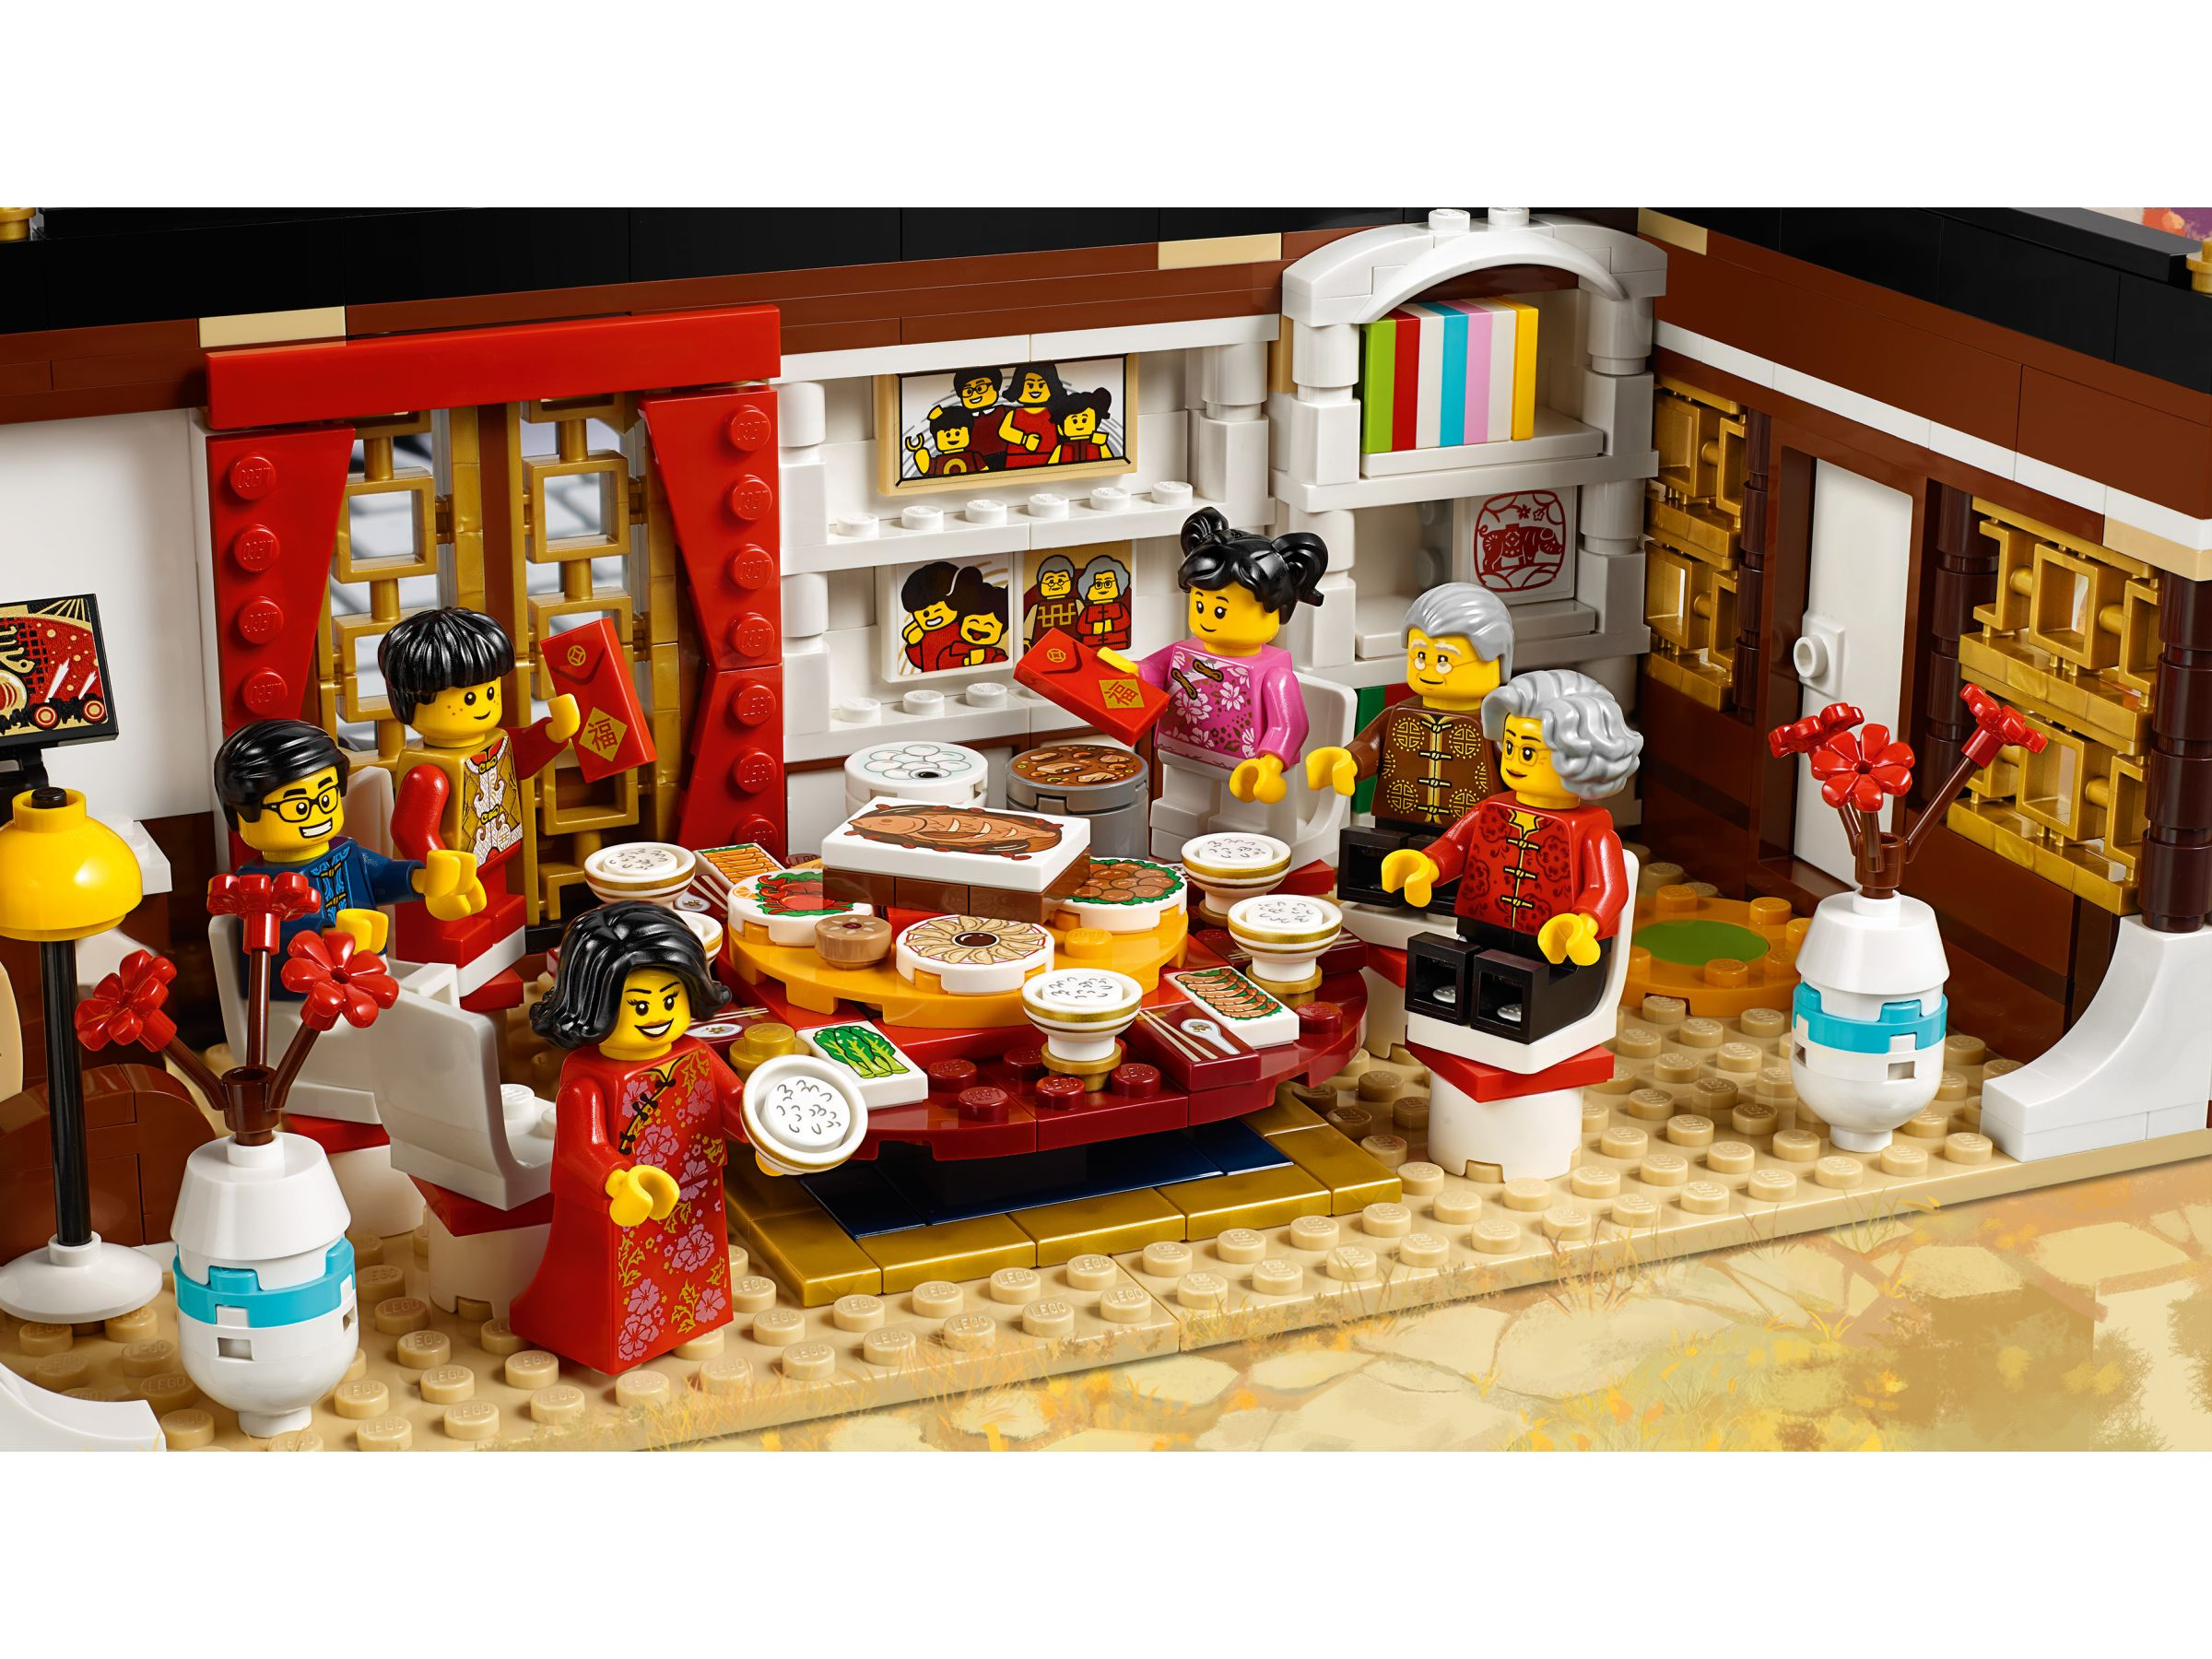 LEGO Seasonal 80101 Chinese New Year's Eve Dinner LEGO_80101_alt5.jpg